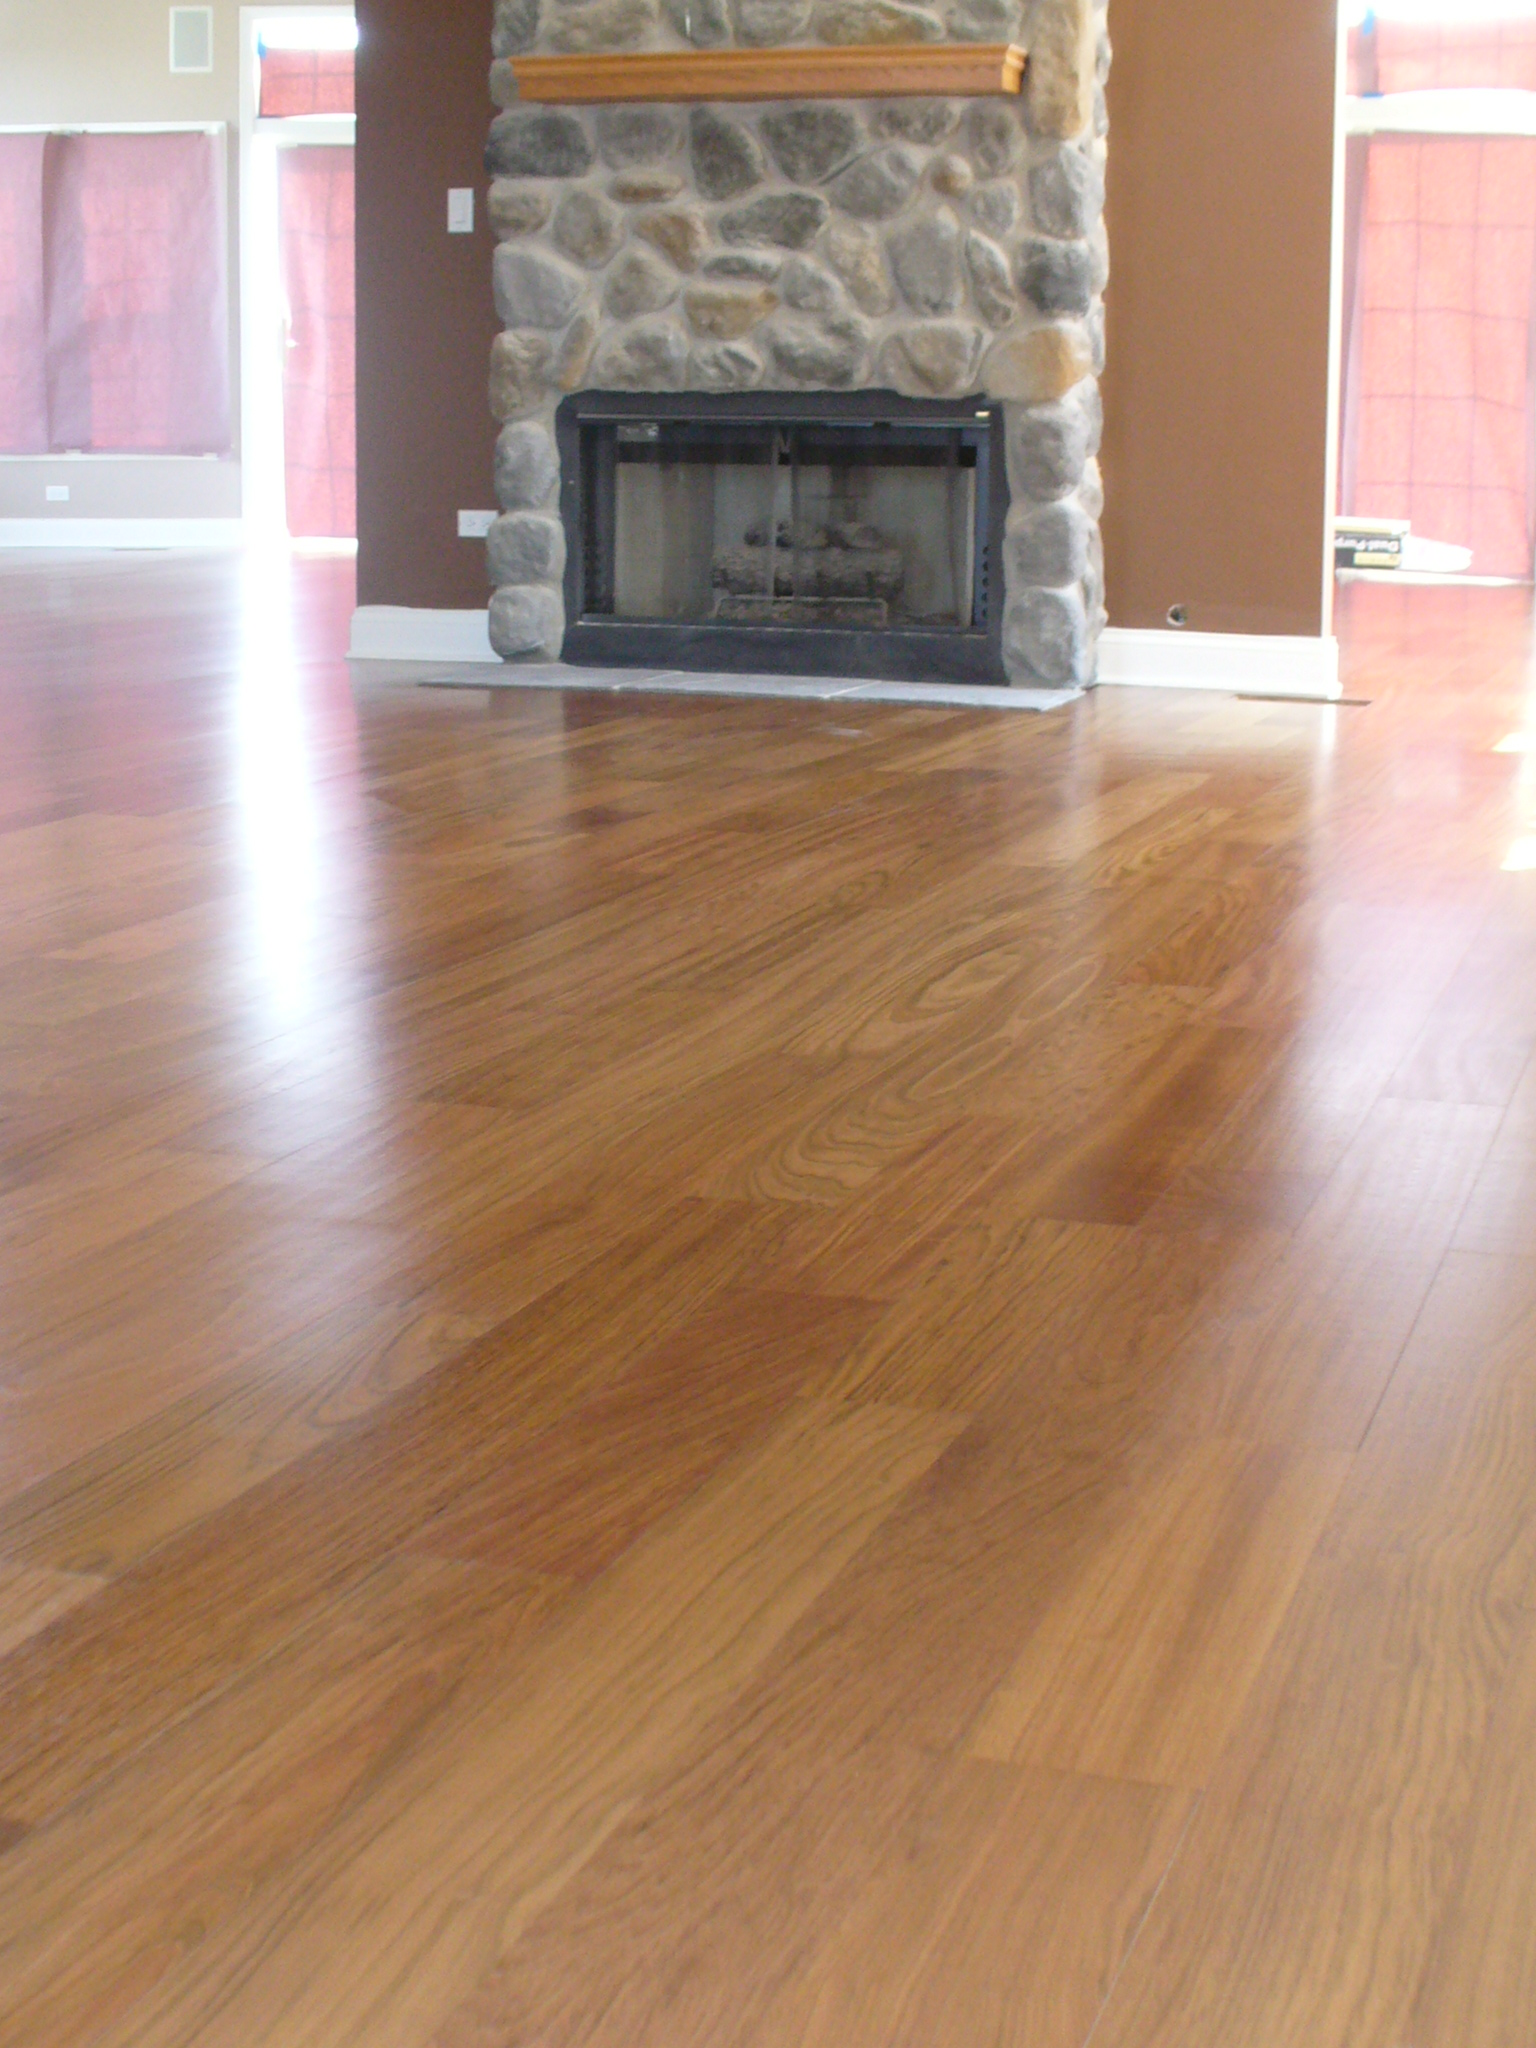 Chicago floors inc chicago hardwood flooring chicago flooring chicago hardwood flooring chicago flooring hardwood floors chicago chicago hardwood flooring services dailygadgetfo Gallery